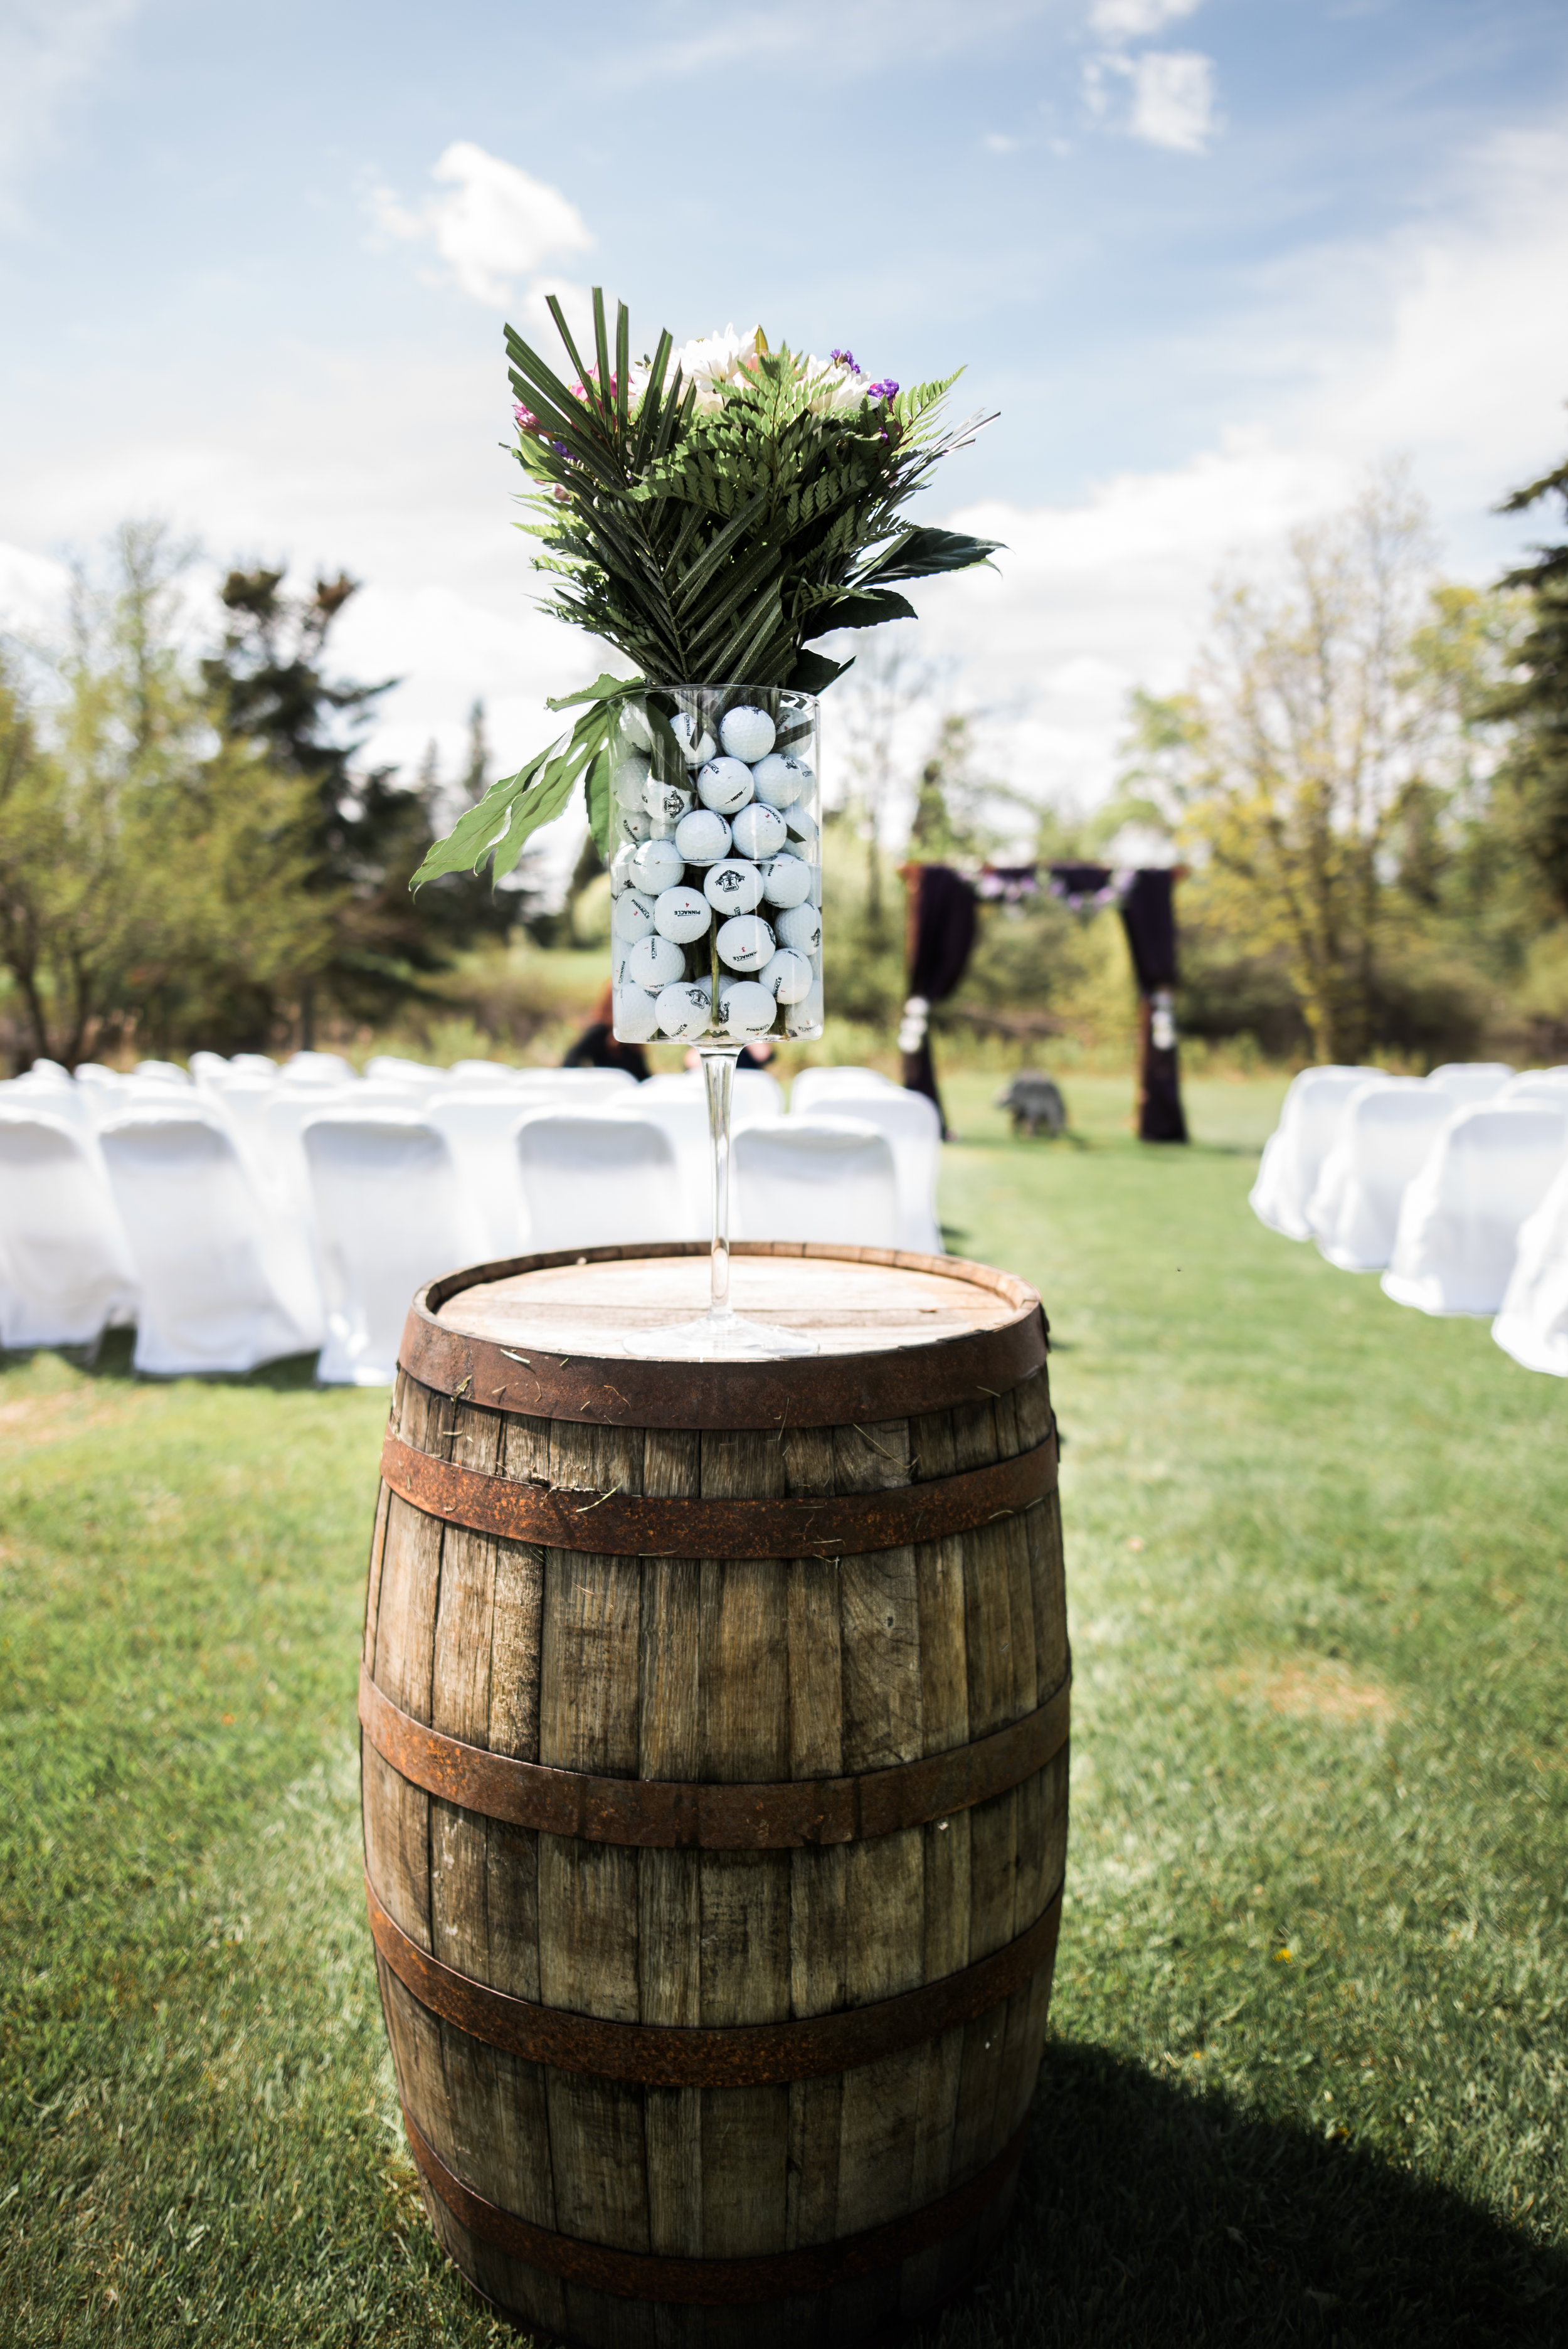 barrel at ceremony.jpg